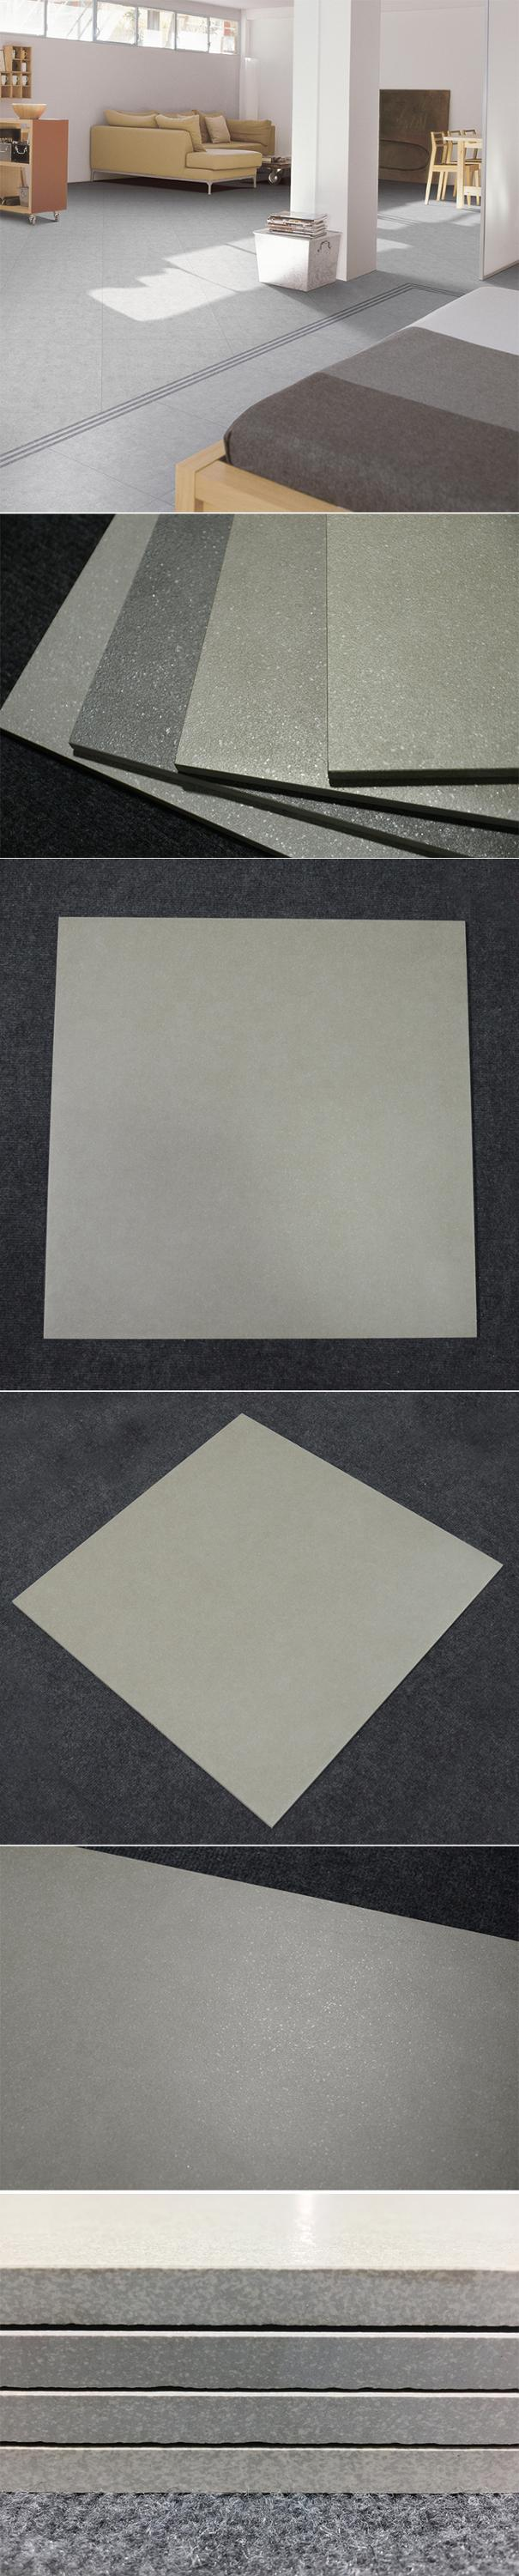 Hcm6604 Micro Ceramic Tile/moroccan Sale Tile/names Of Bathroom ...